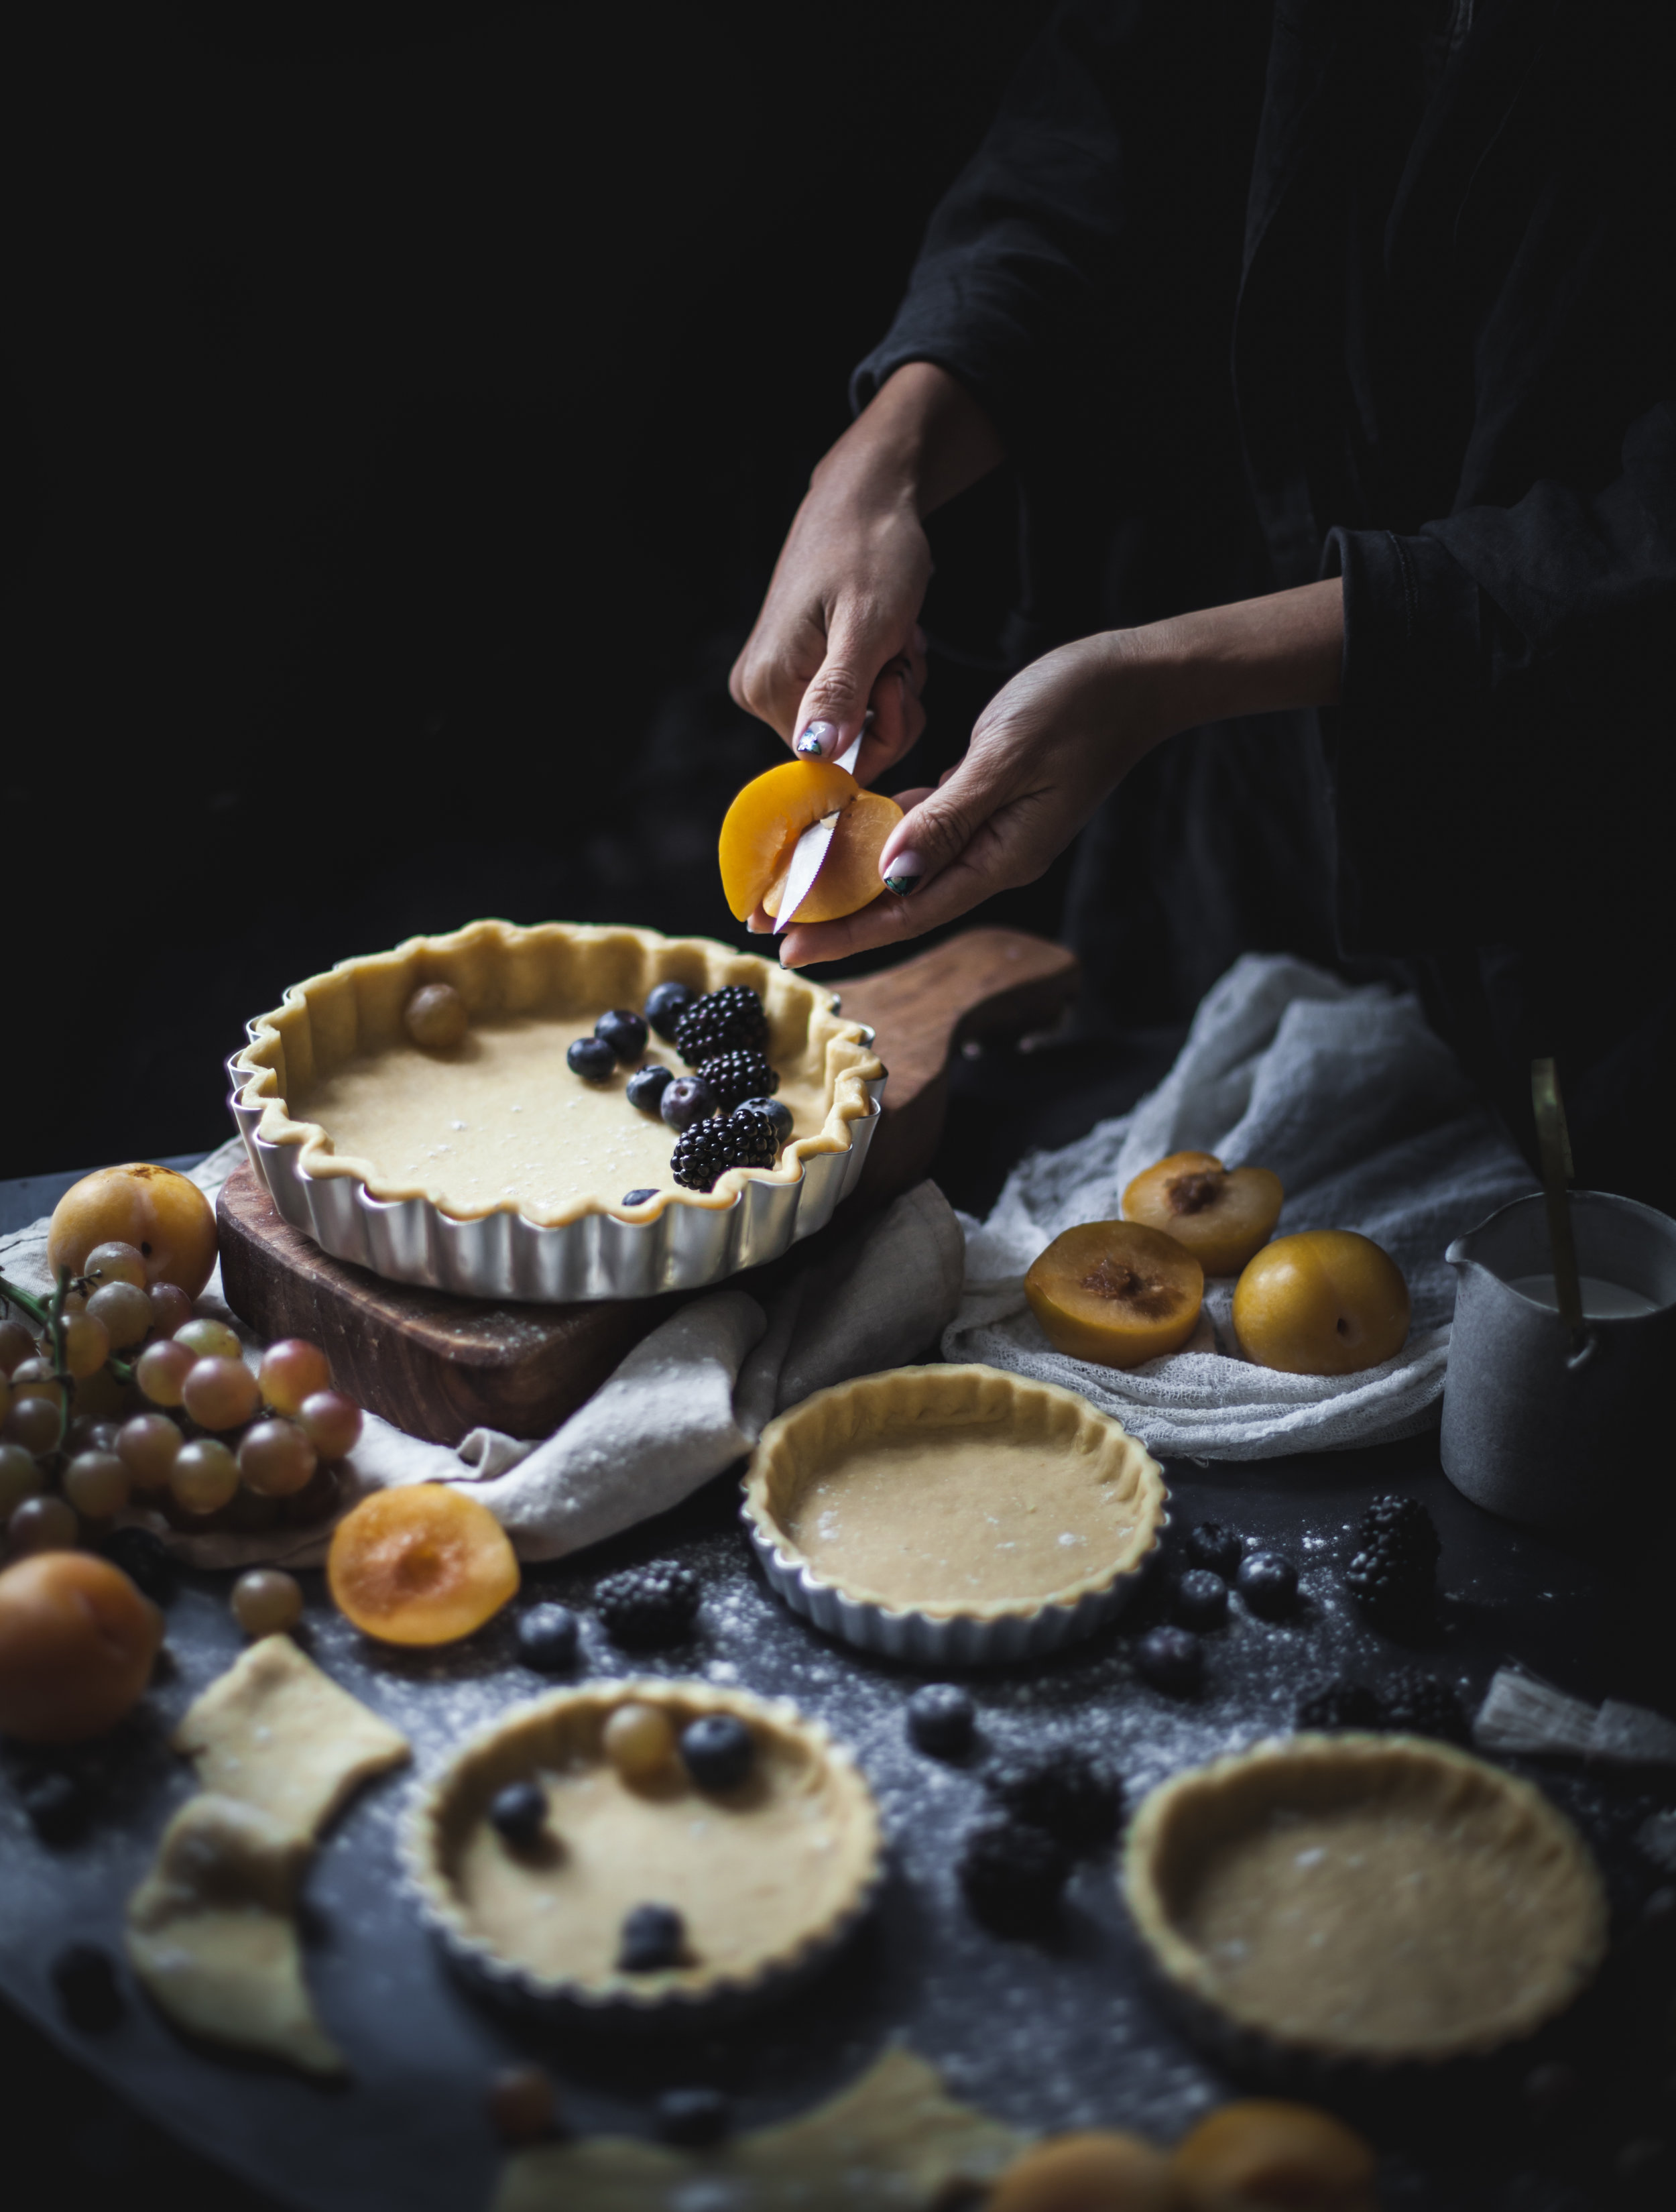 vegan tarts with plums and berries